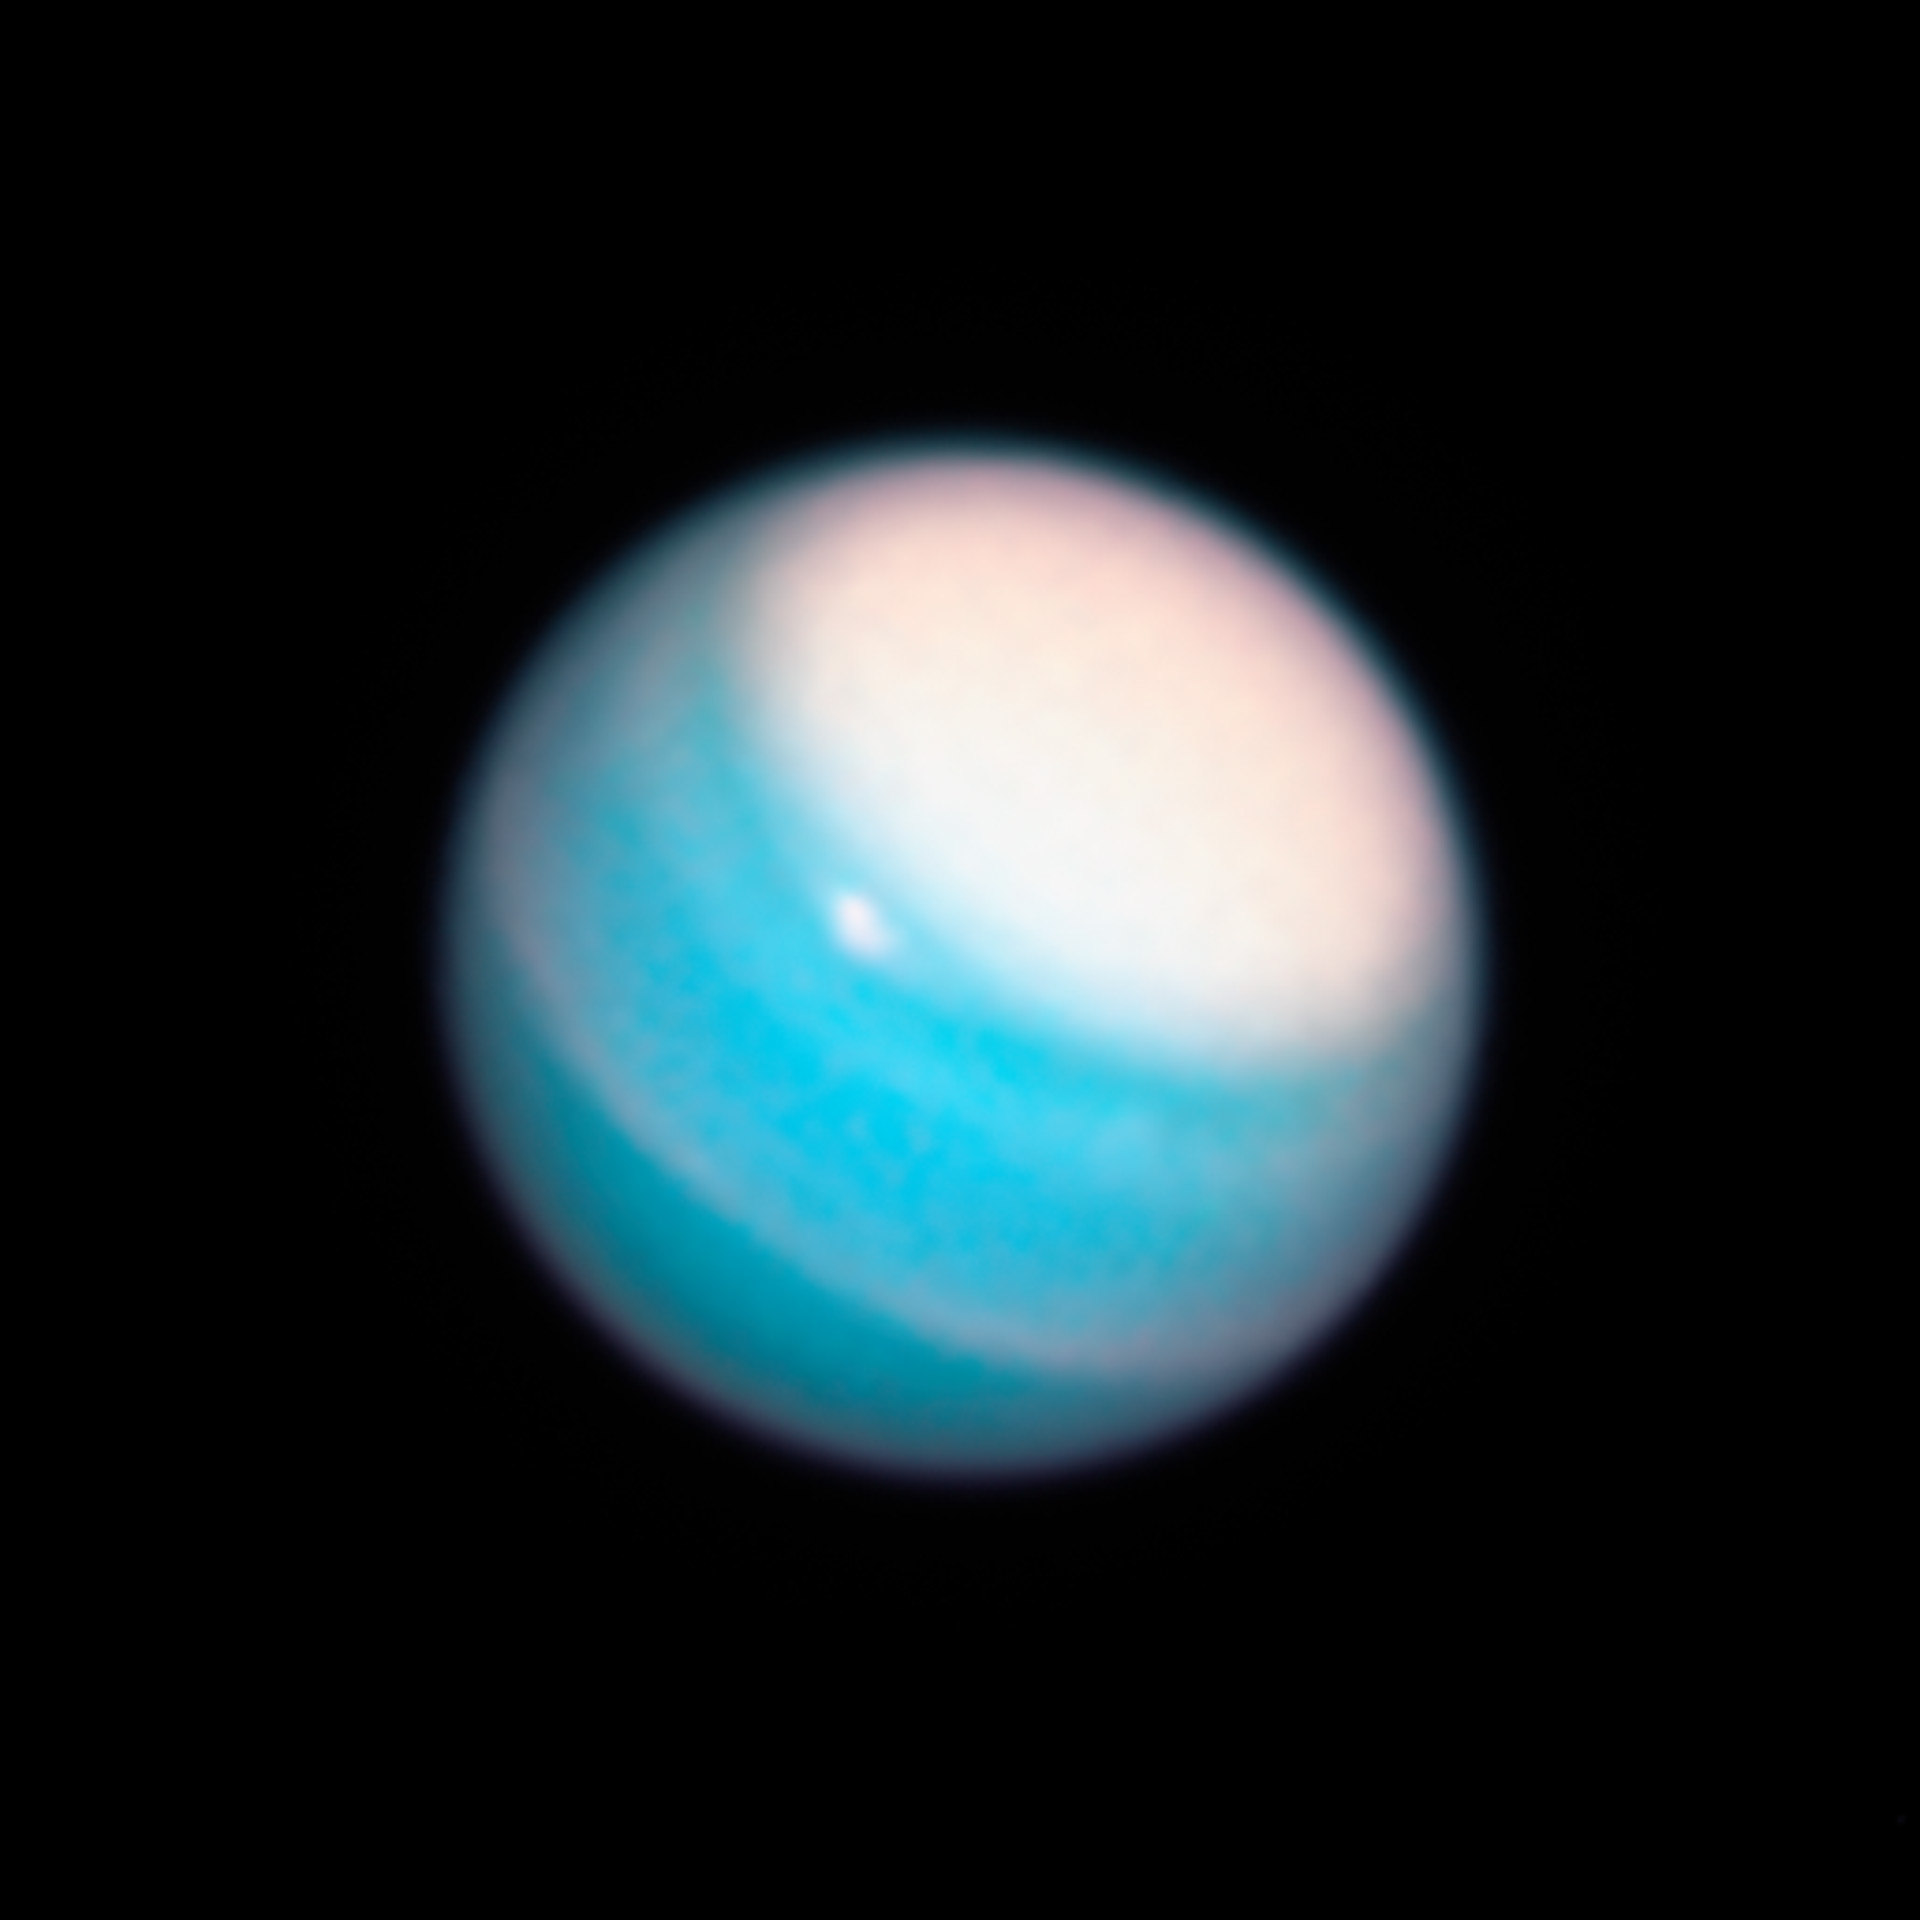 Hubble Space Telescope Captures Dynamic Atmospheres of Neptune and Uranus